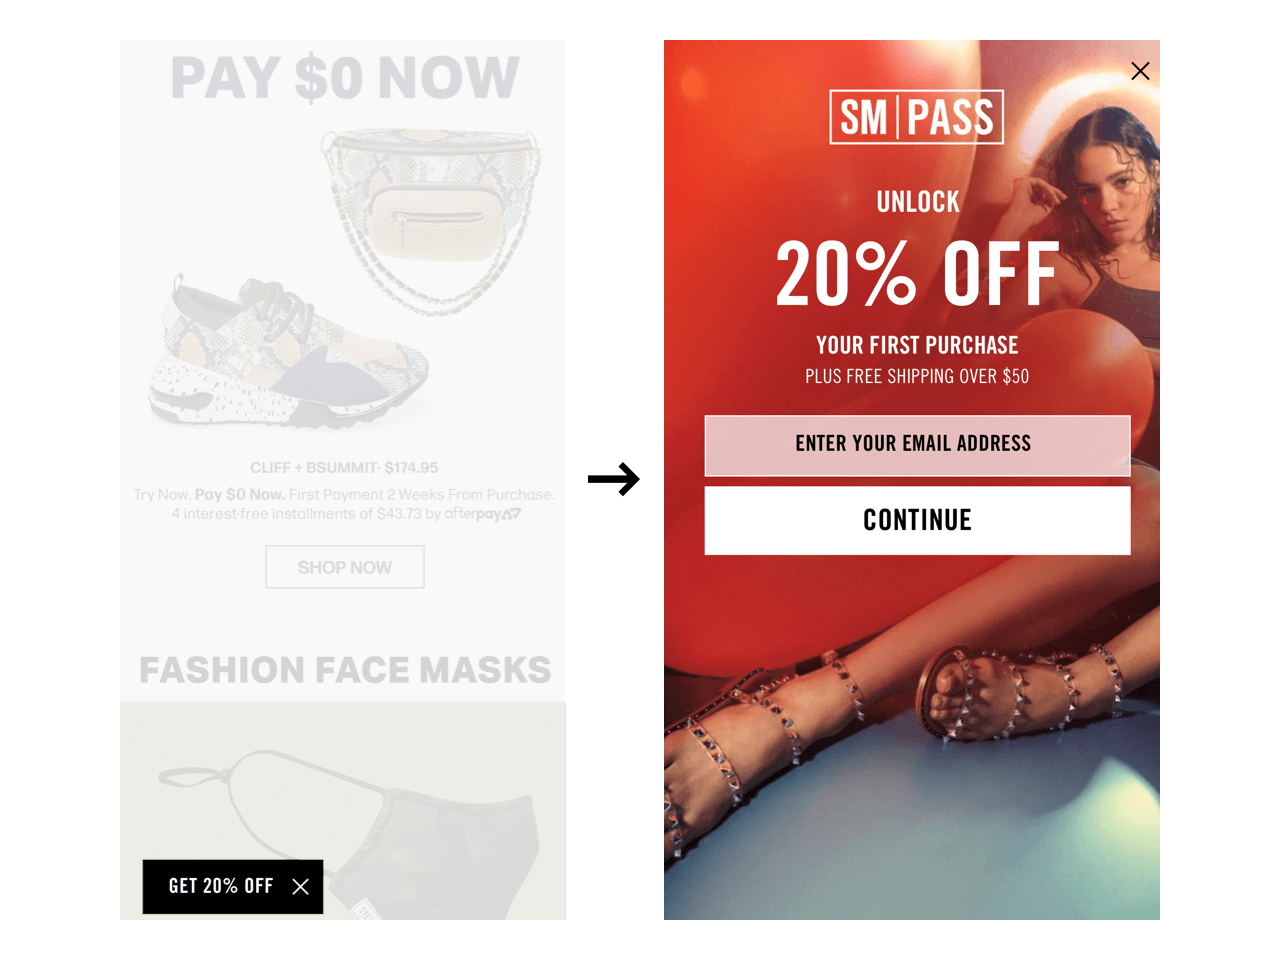 Steve Madden website includes a CTA panel that expands into a subscription form